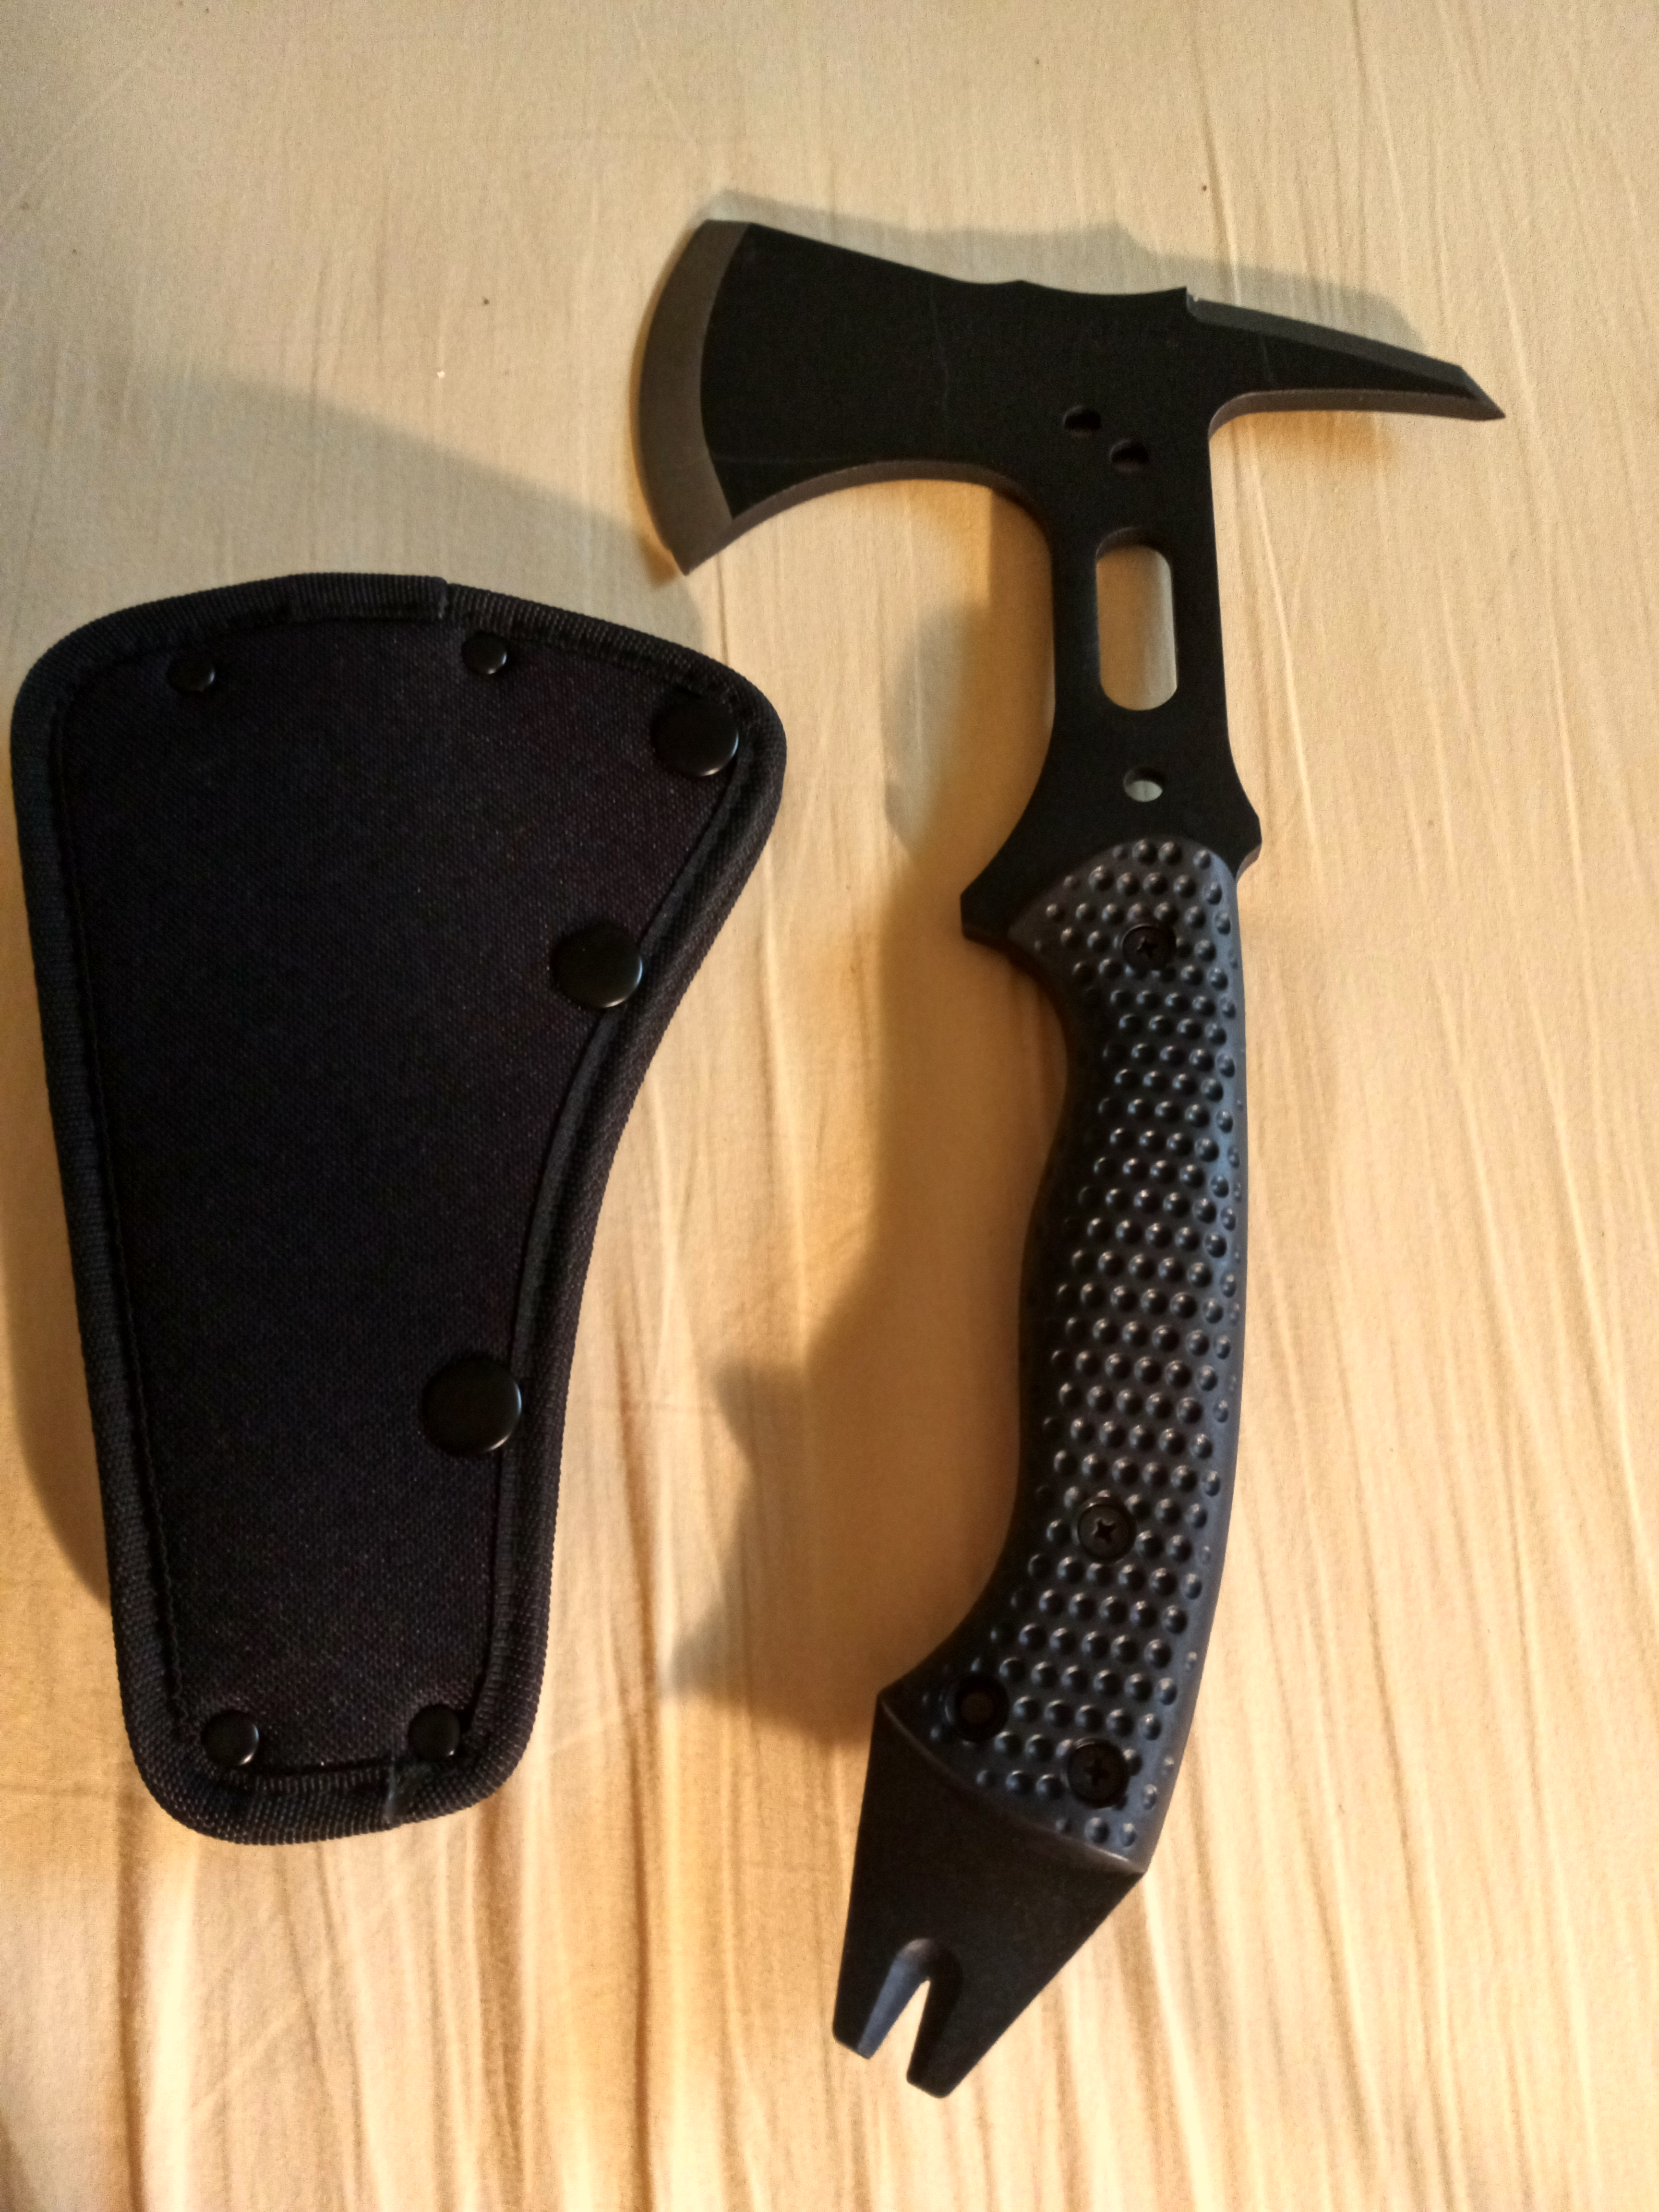 New toy today Schrade tactical hatchet-img_20200730_184053_1596152662100.jpg